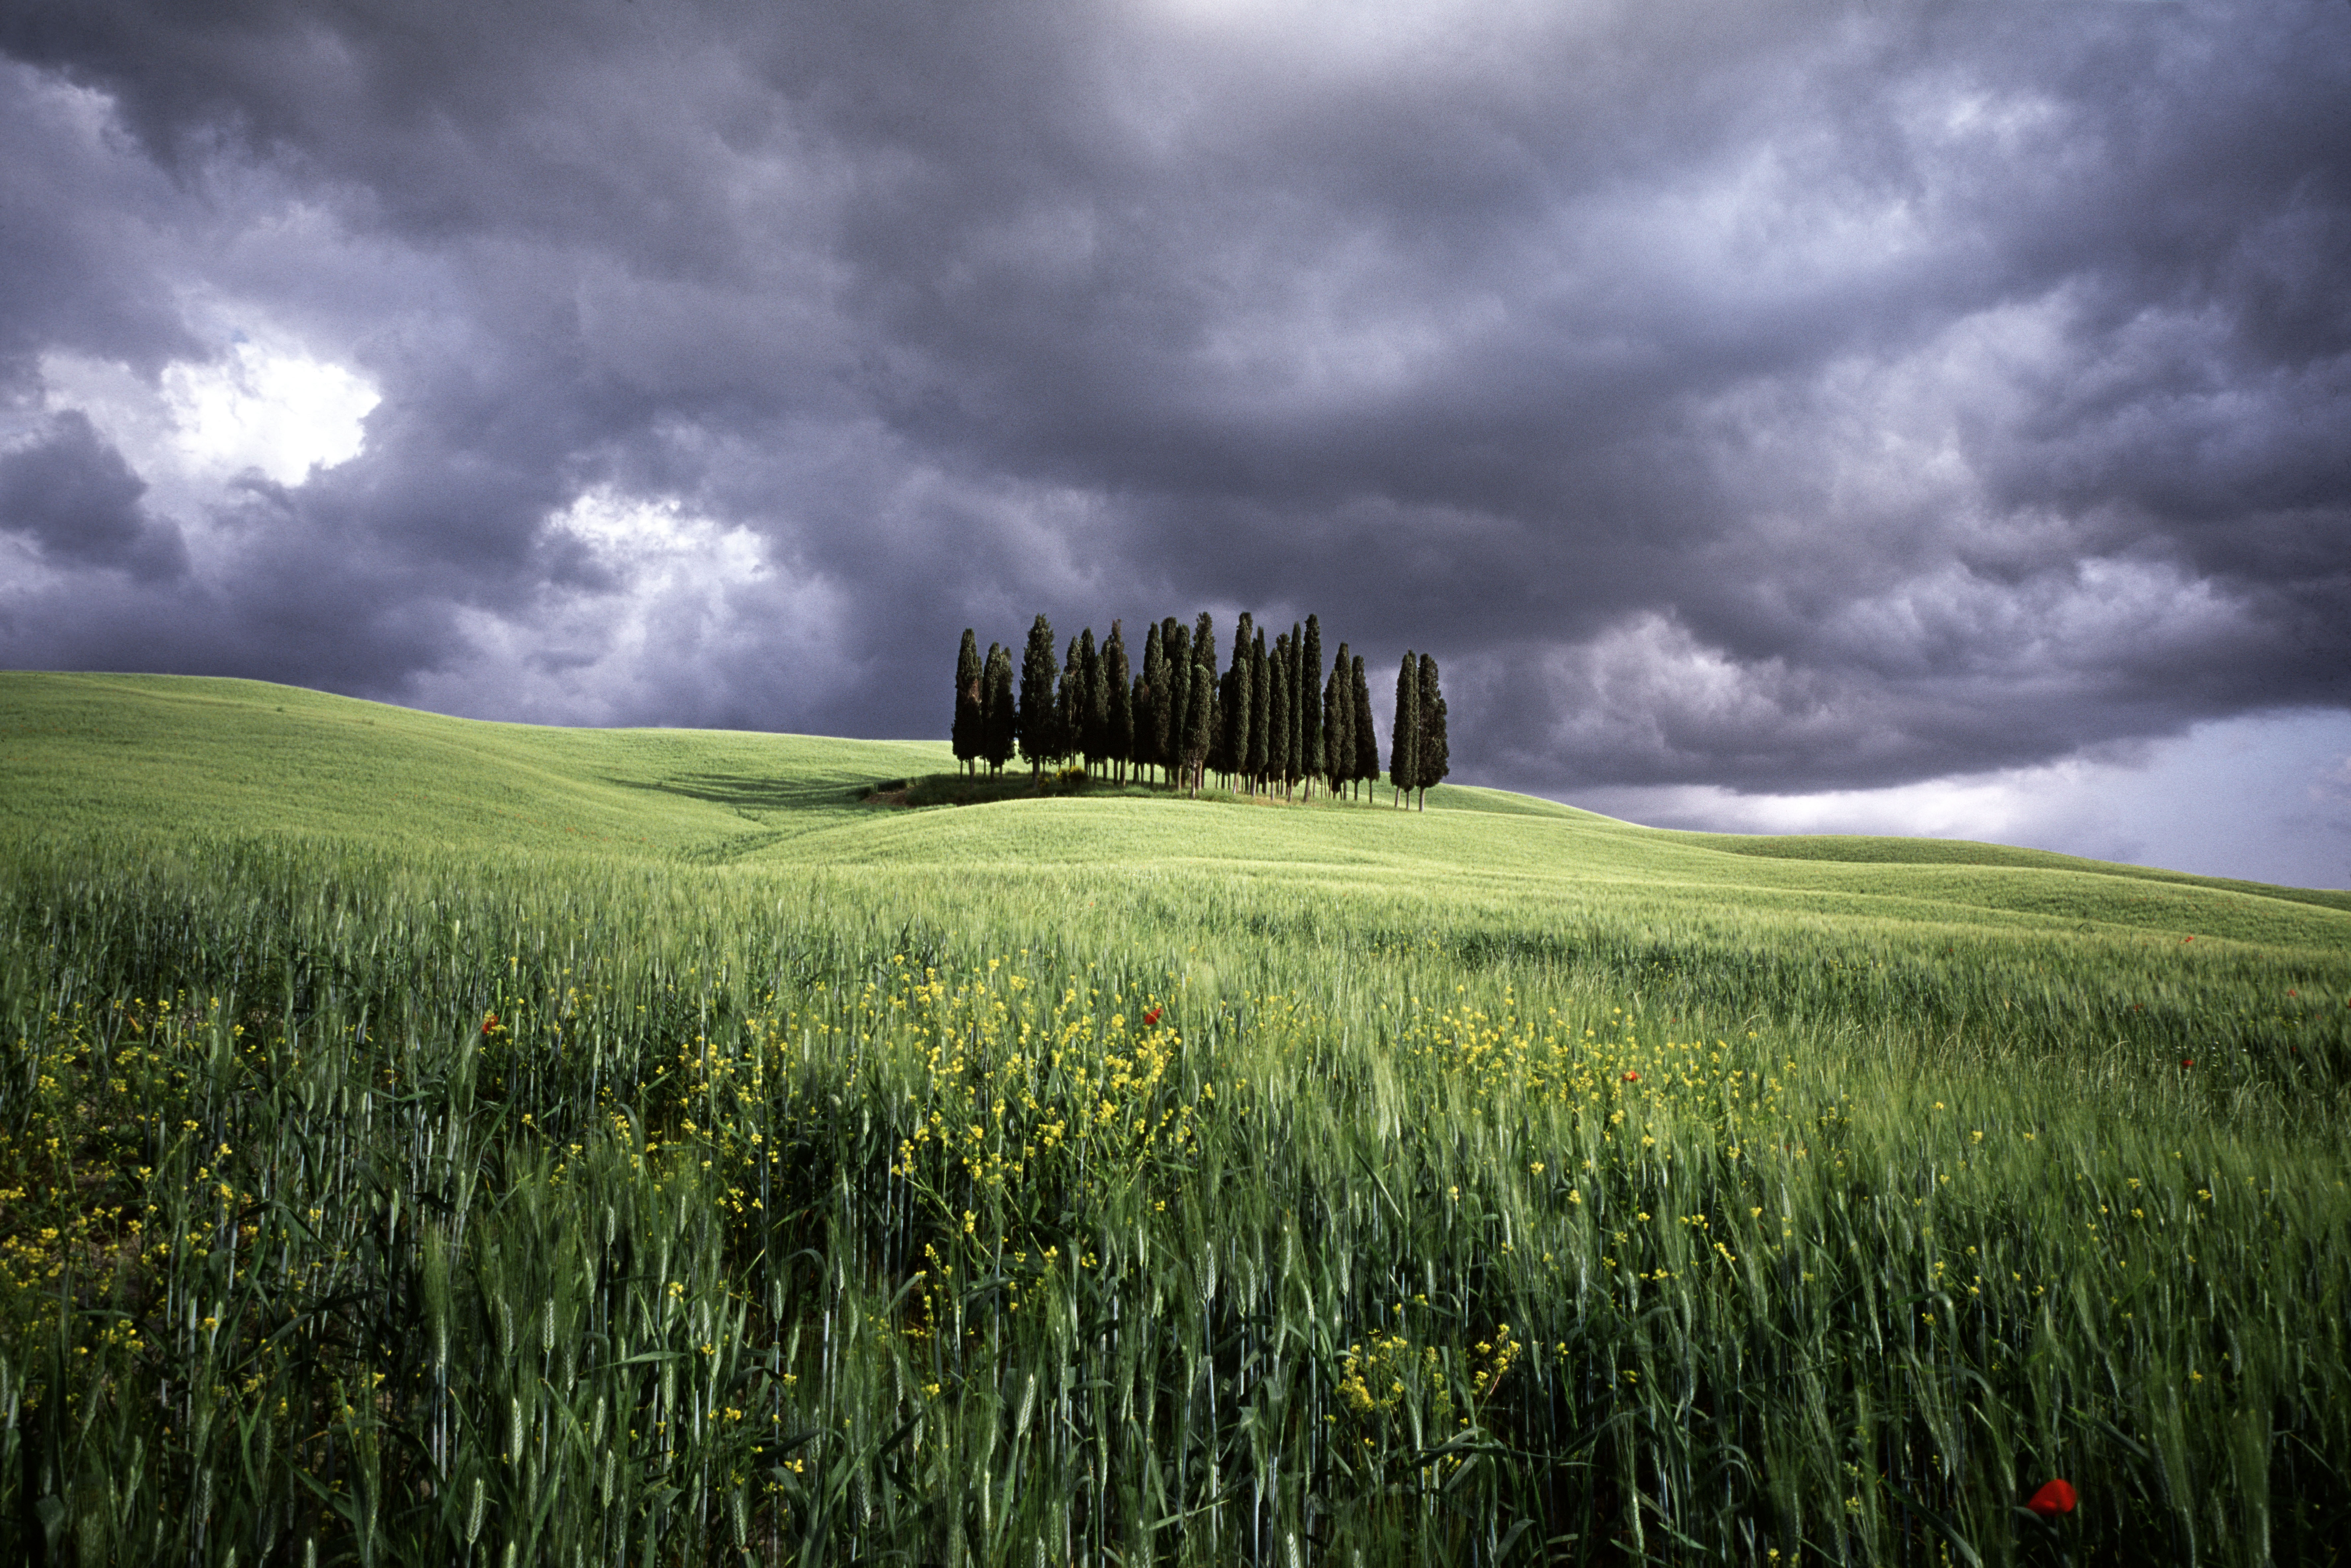 St Quirico d'orcia, Italy (030900)